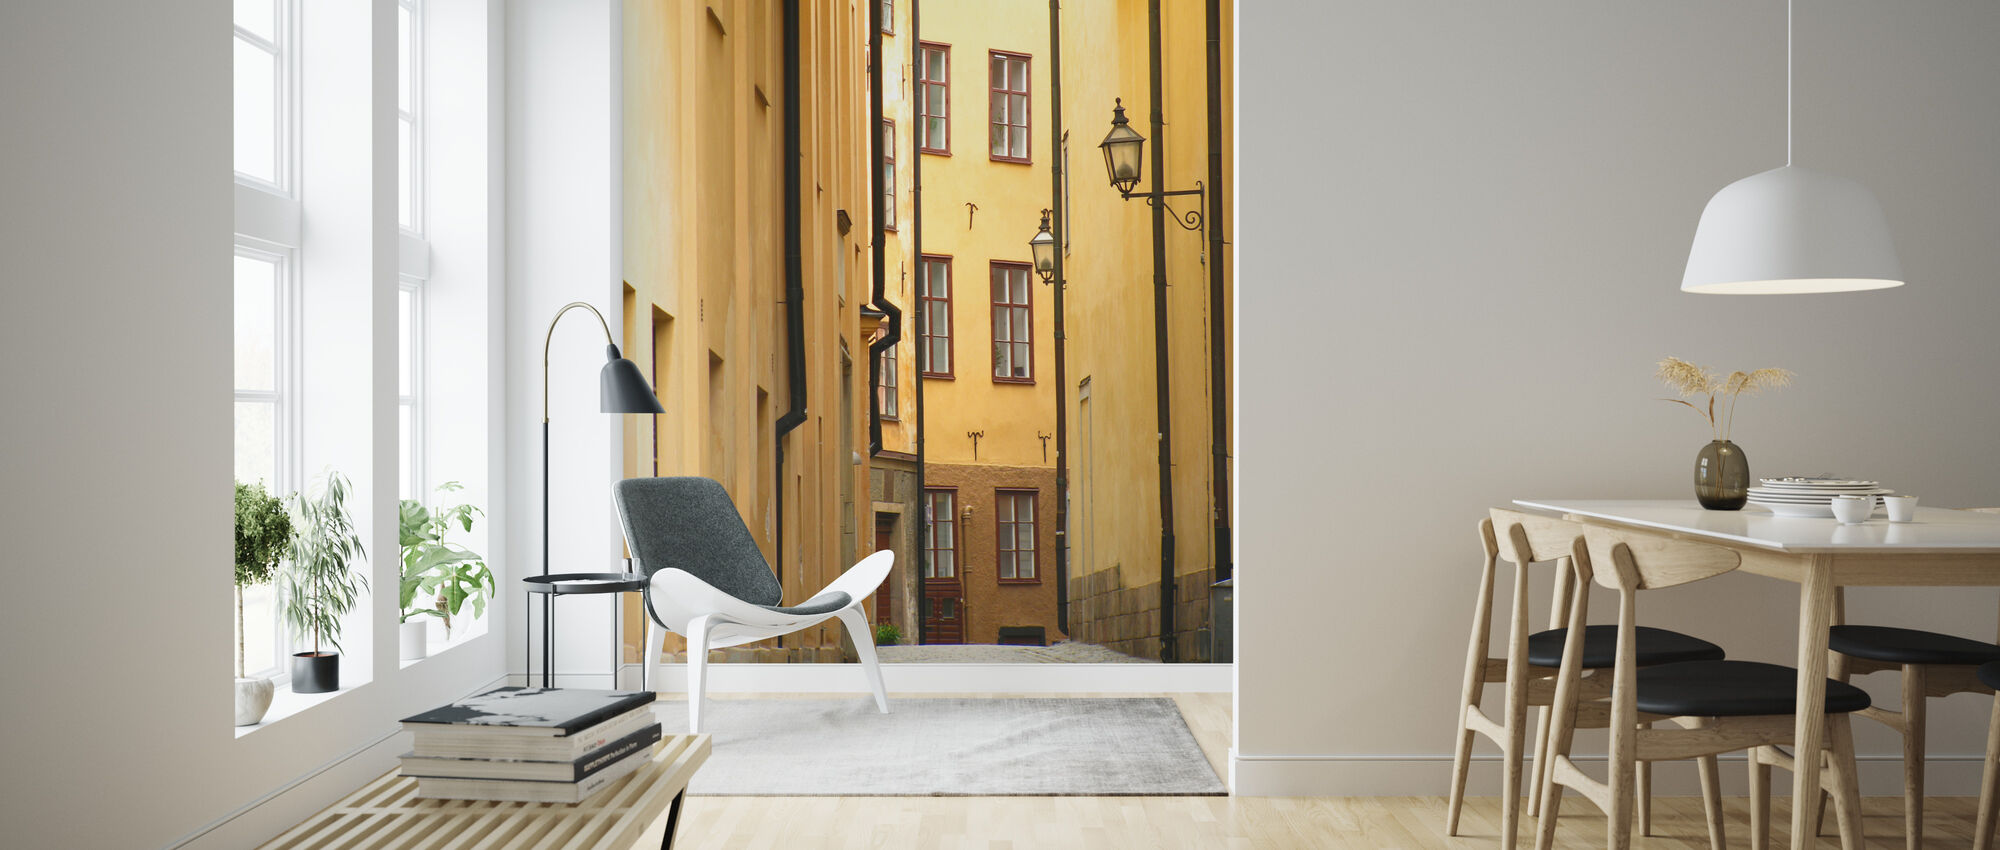 Narrow Alley of Stockholm Old Town - Wallpaper - Living Room